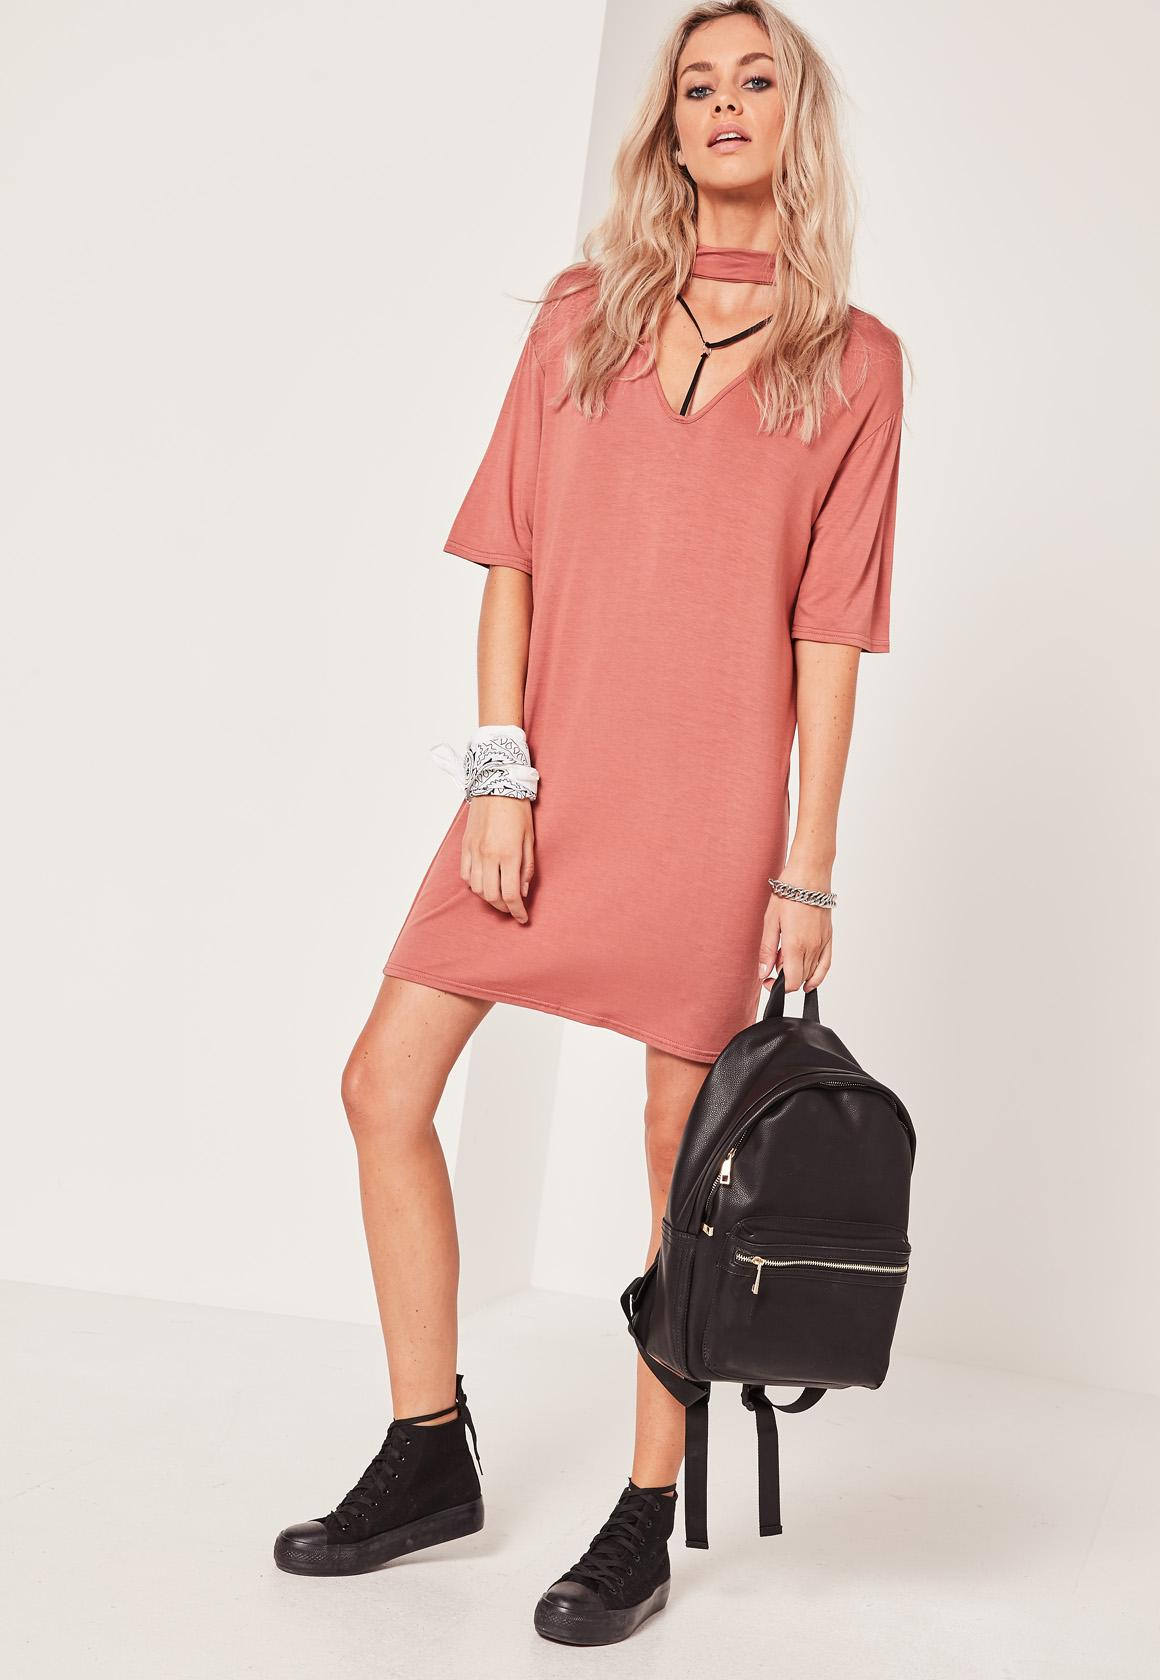 Robe t shirt rose